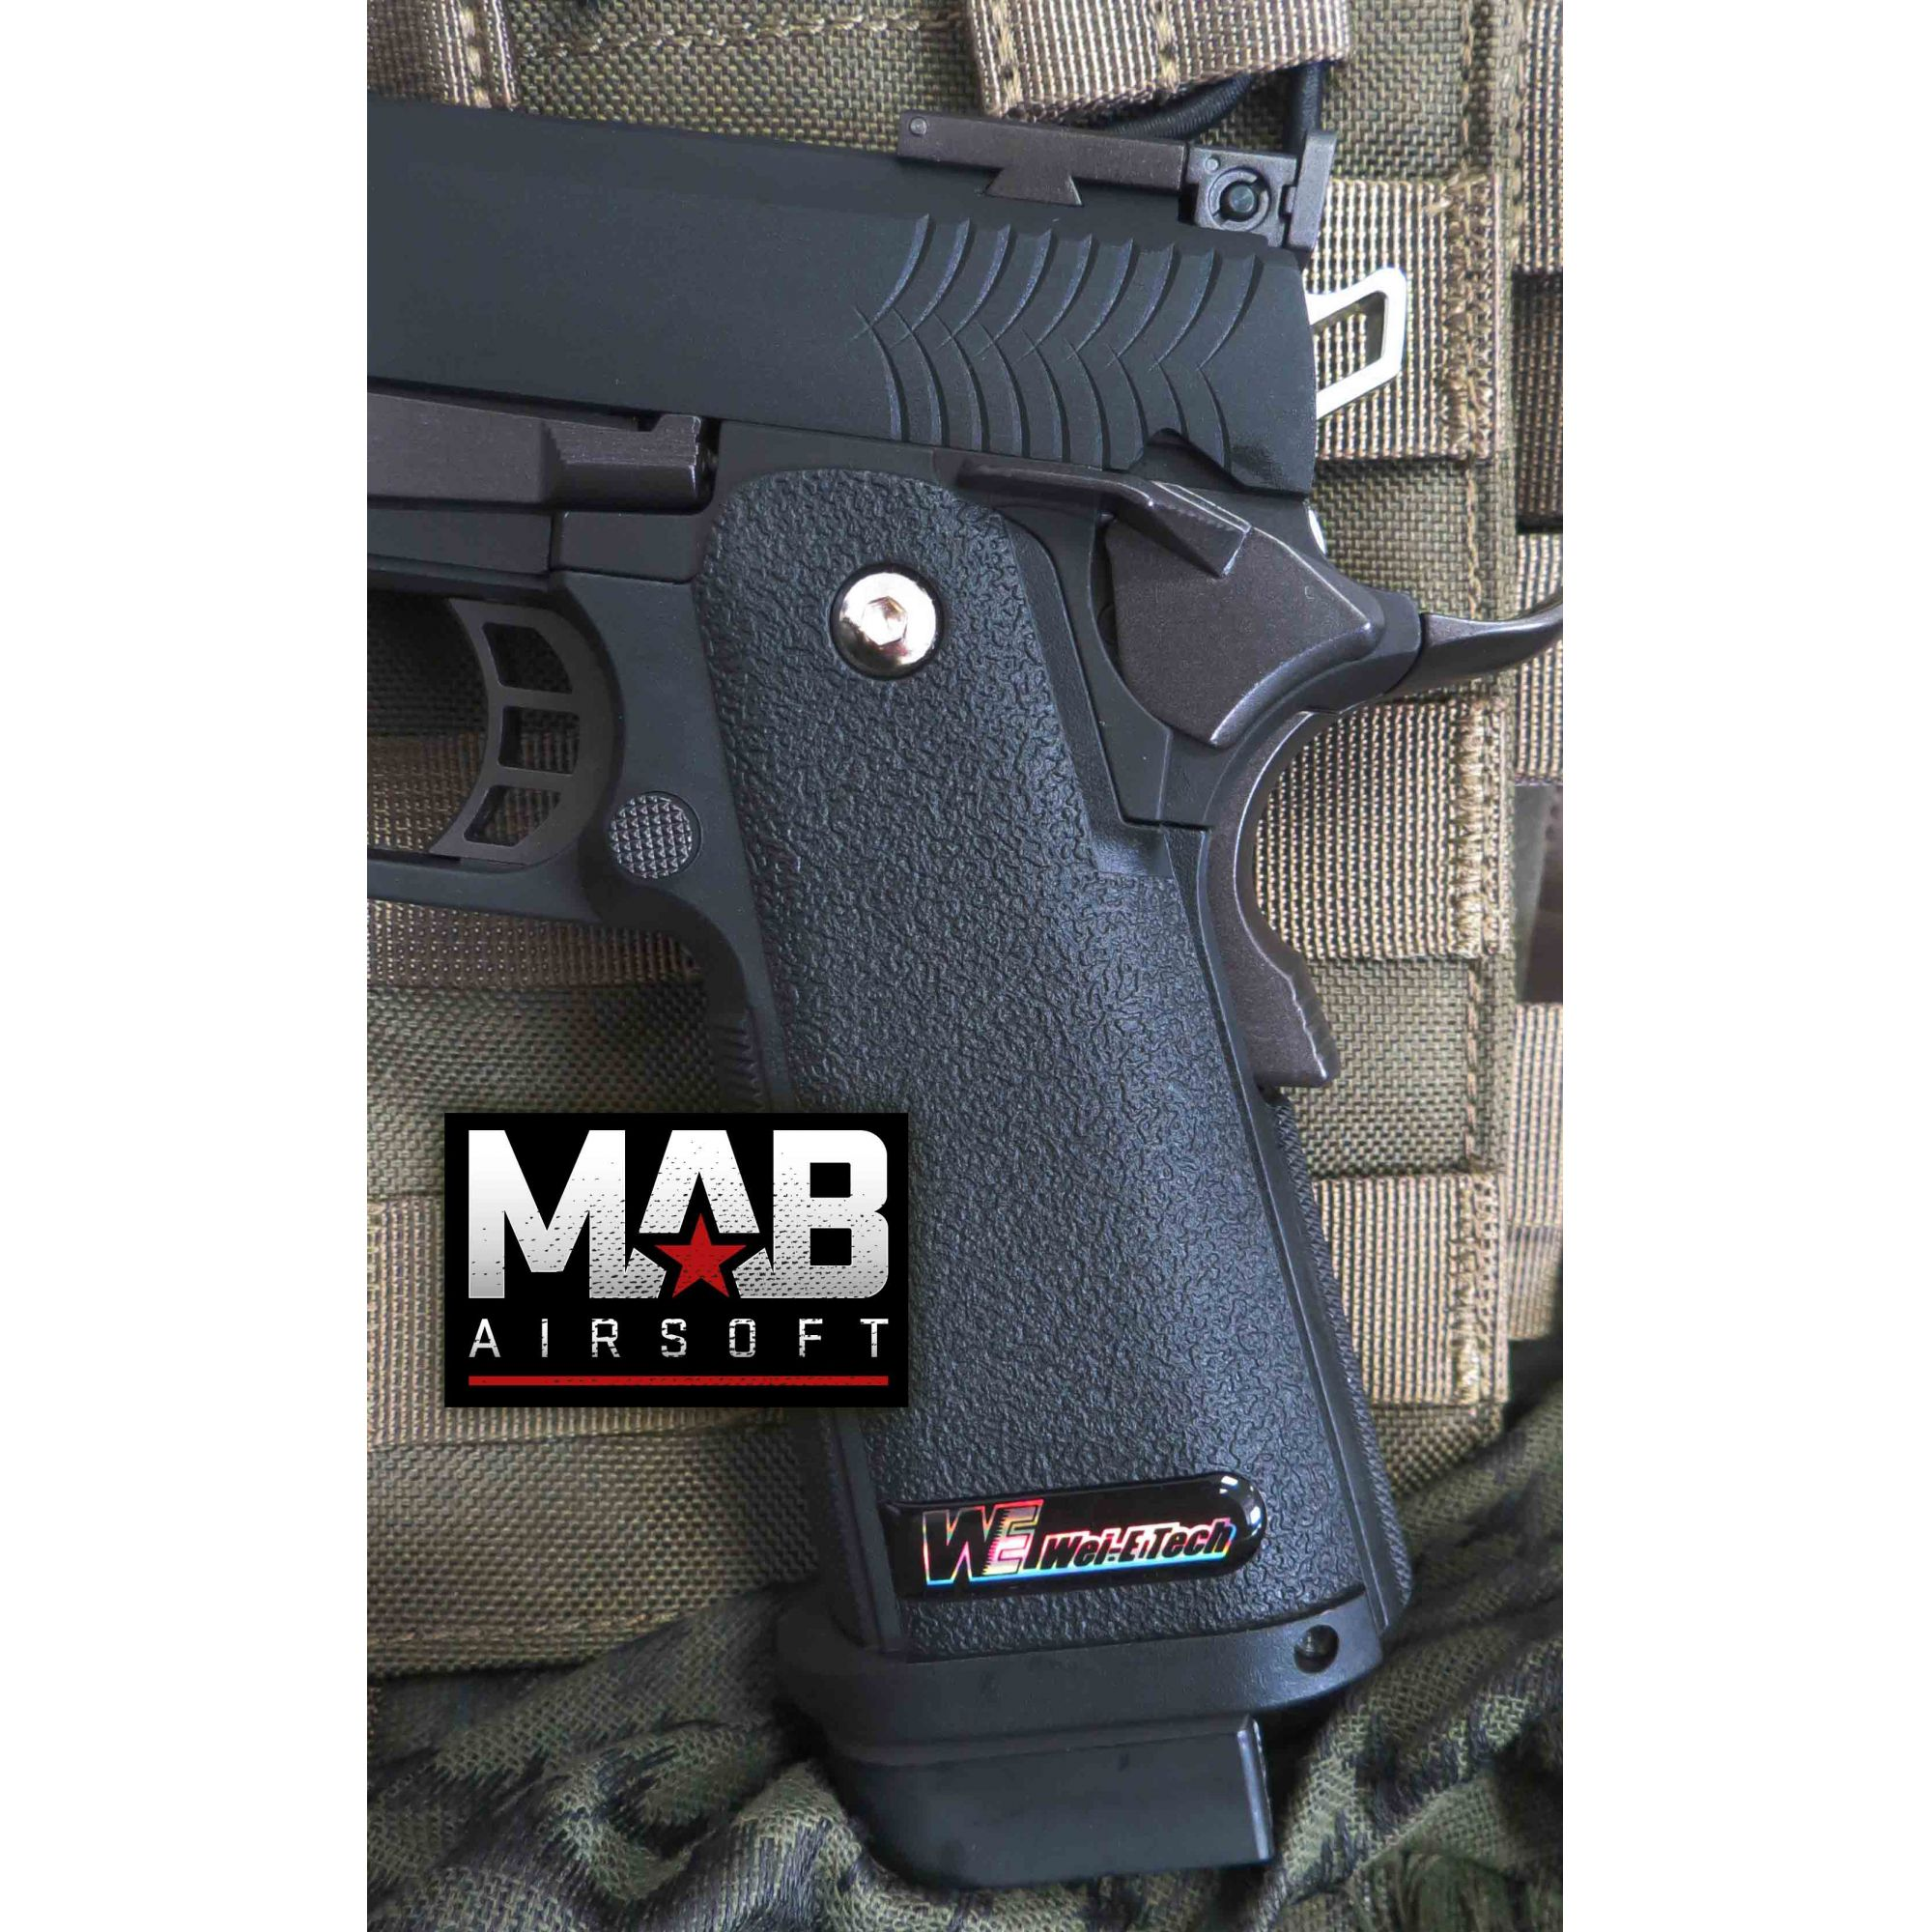 Pistola Airsoft WE Hi-Capa 5.1 K1 Lightened GBB Full Metal Preta - Calibre 6 mm  - MAB AIRSOFT